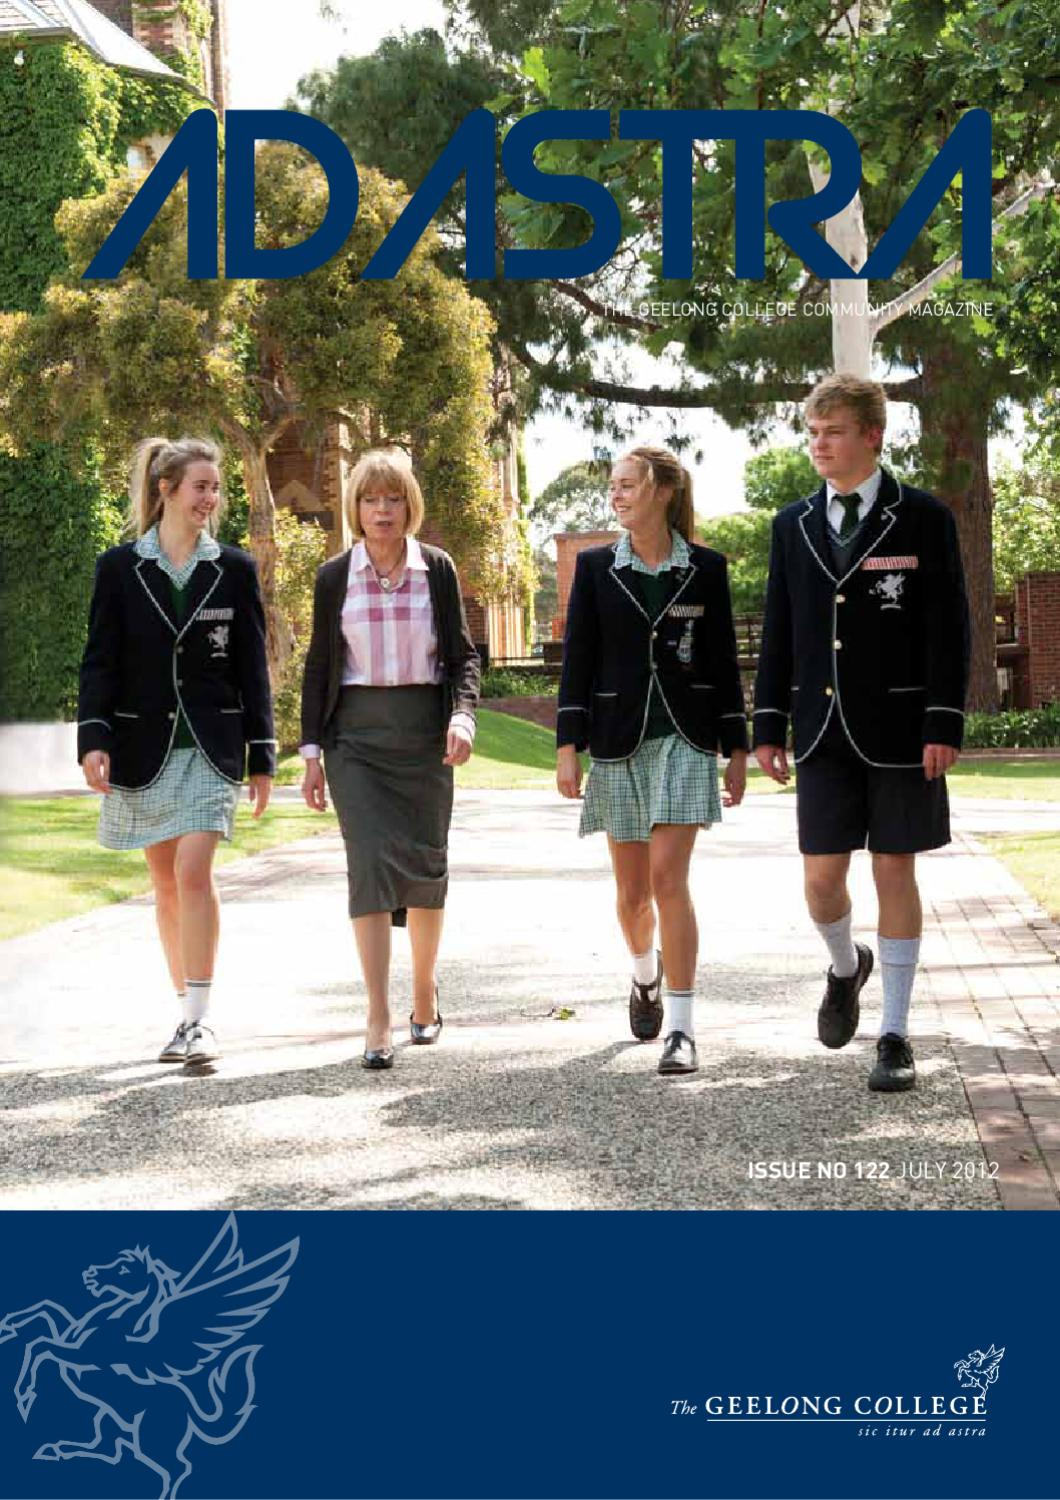 Ad Astra No 122 July 2012 by Geelong College - issuu